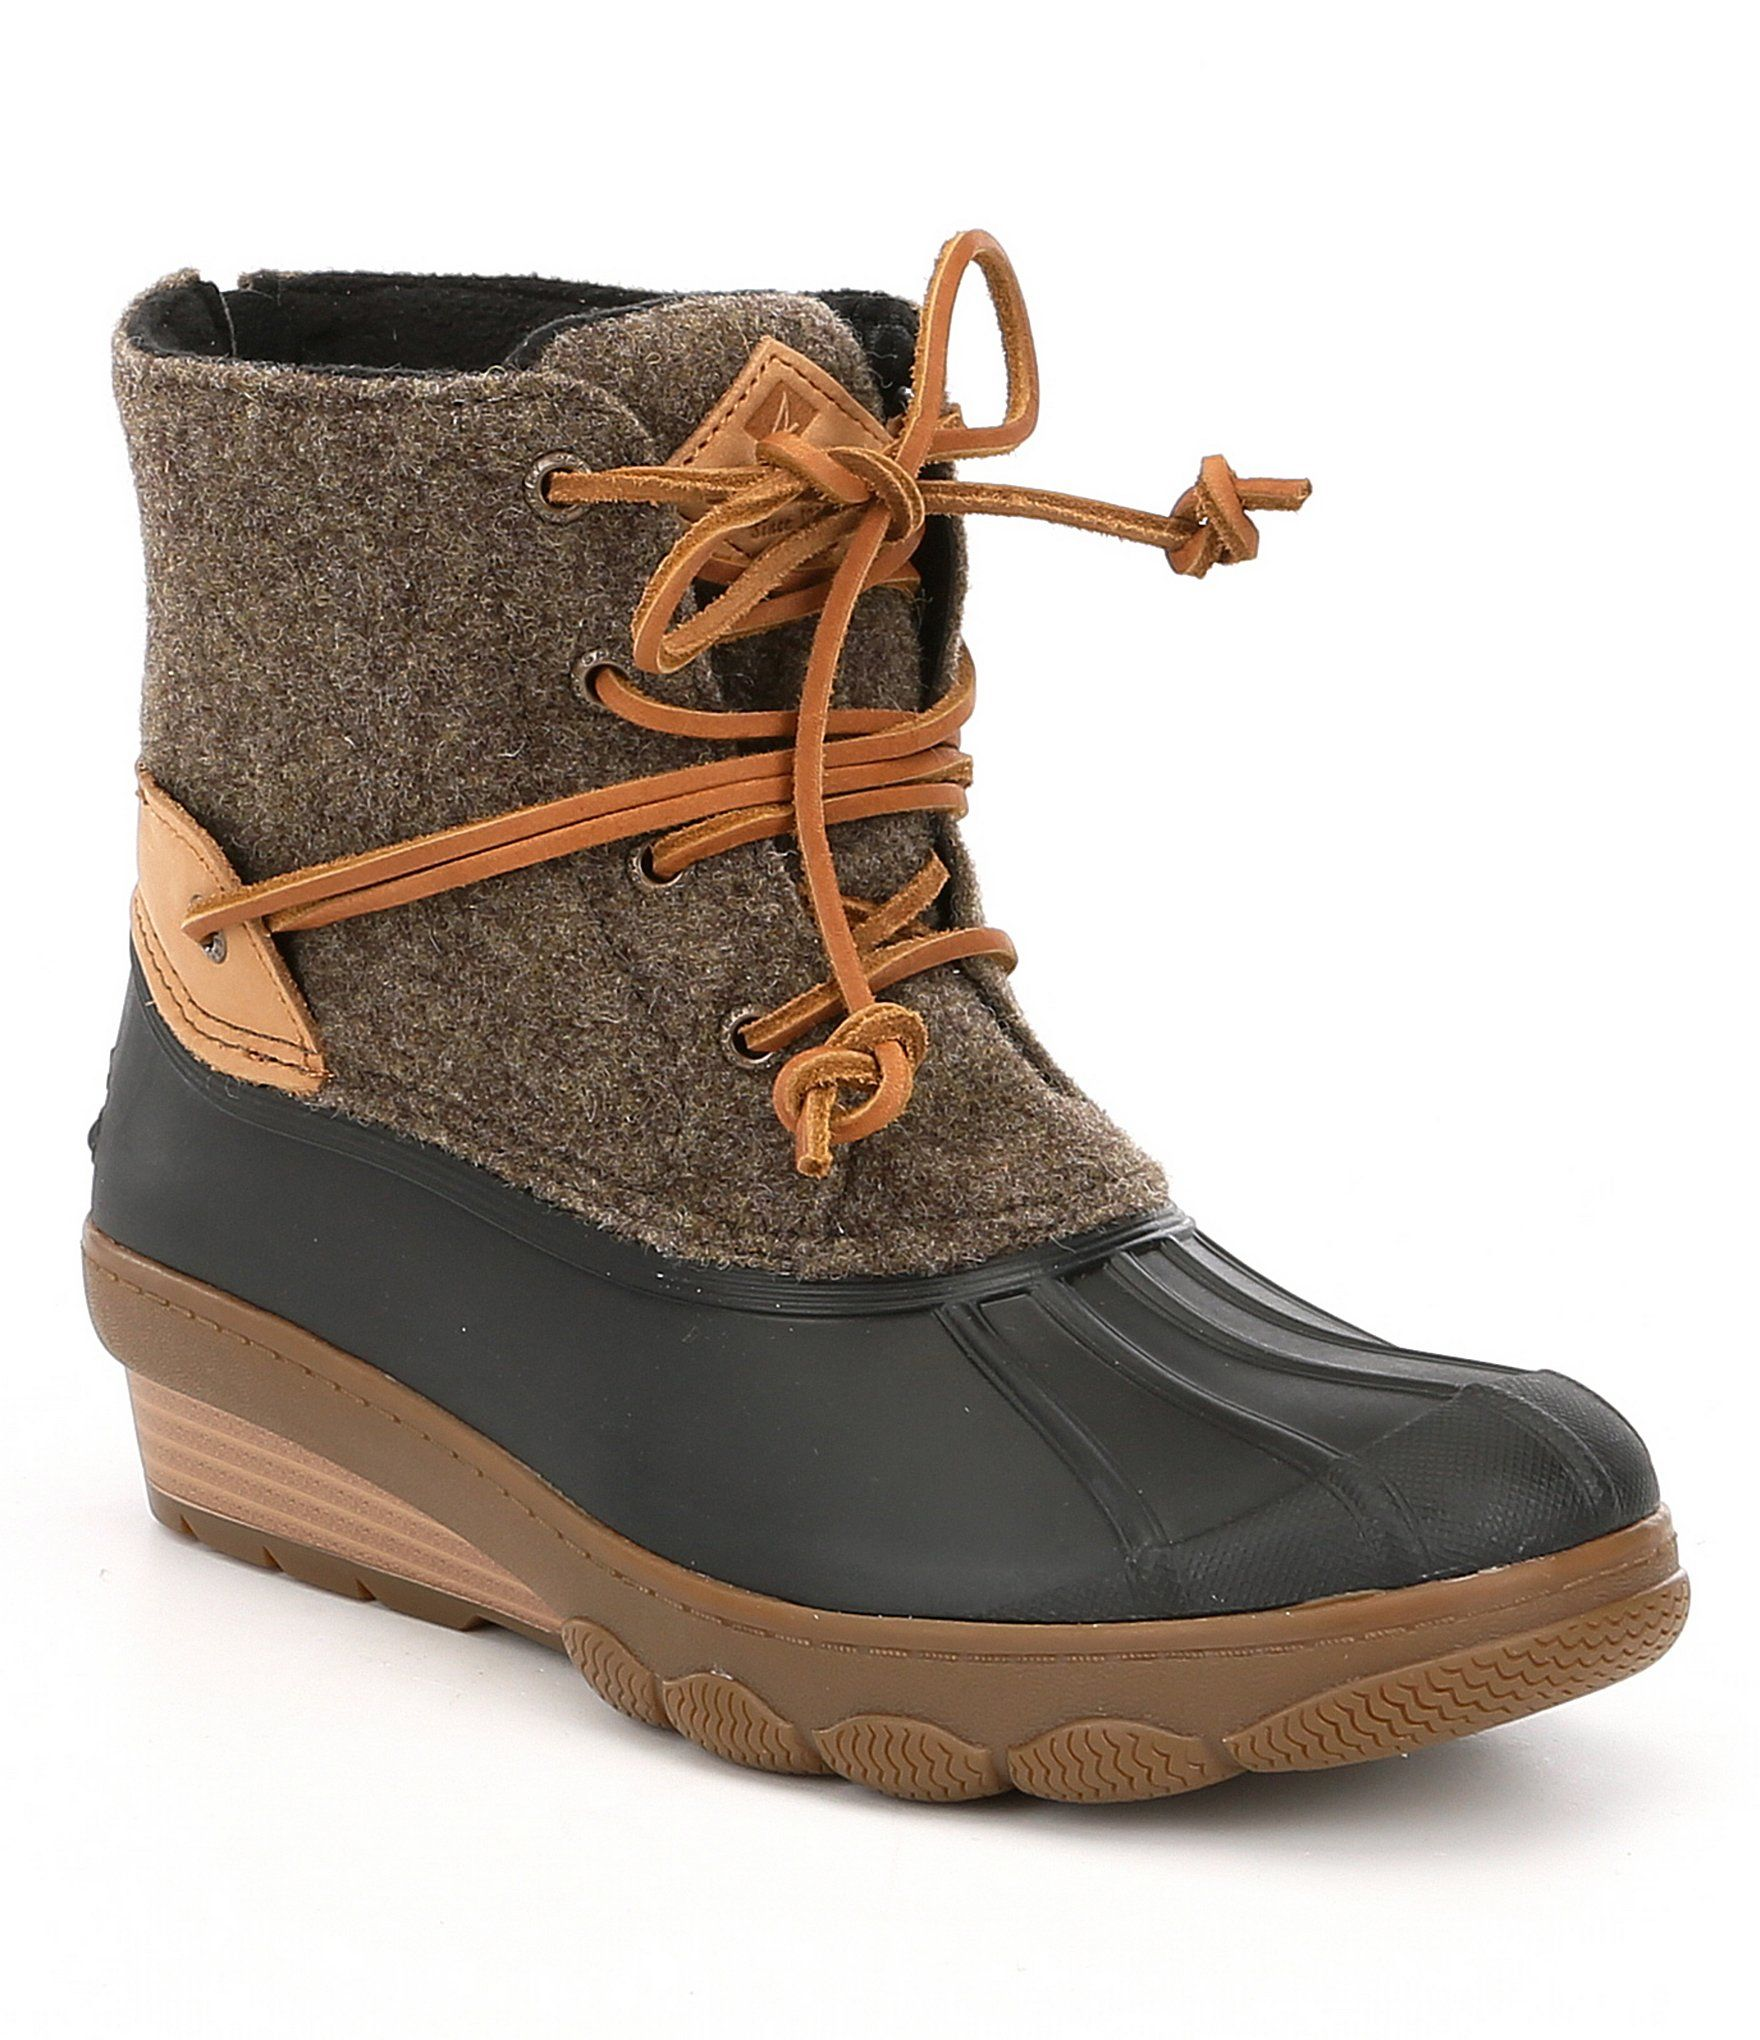 bf8b053470d6 Shop for Sperry Saltwater Wedge Tide Wool Duck Boots at Dillards.com. Visit  Dillards.com to find clothing